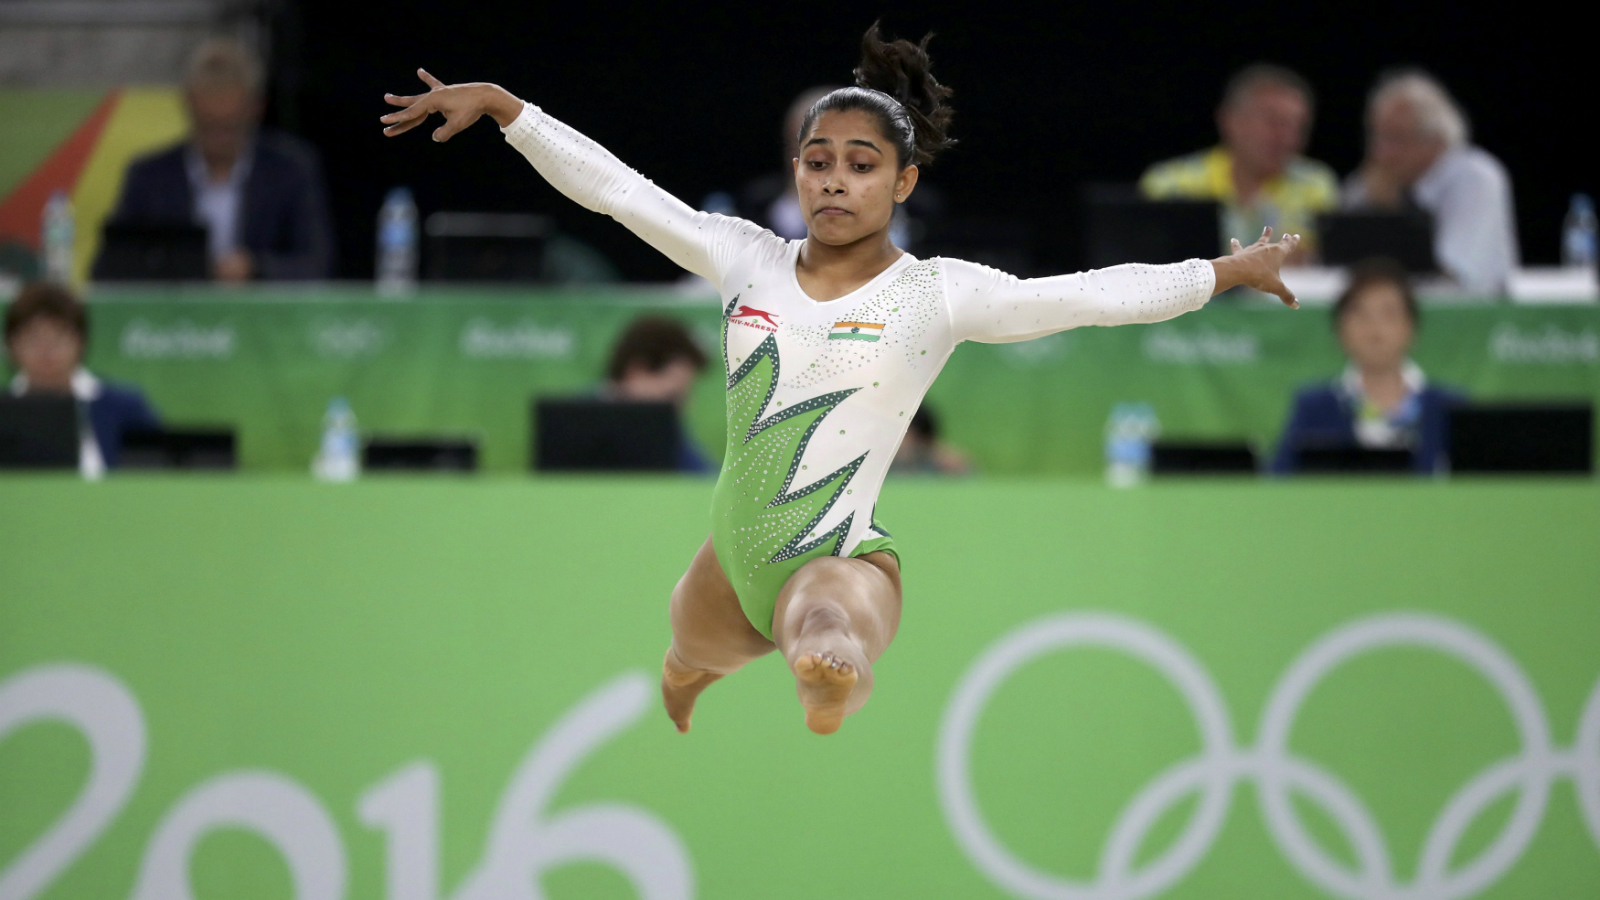 Gymnastic, Indian Gymnast, Dipa Karmakar, Summer Olympics 2016